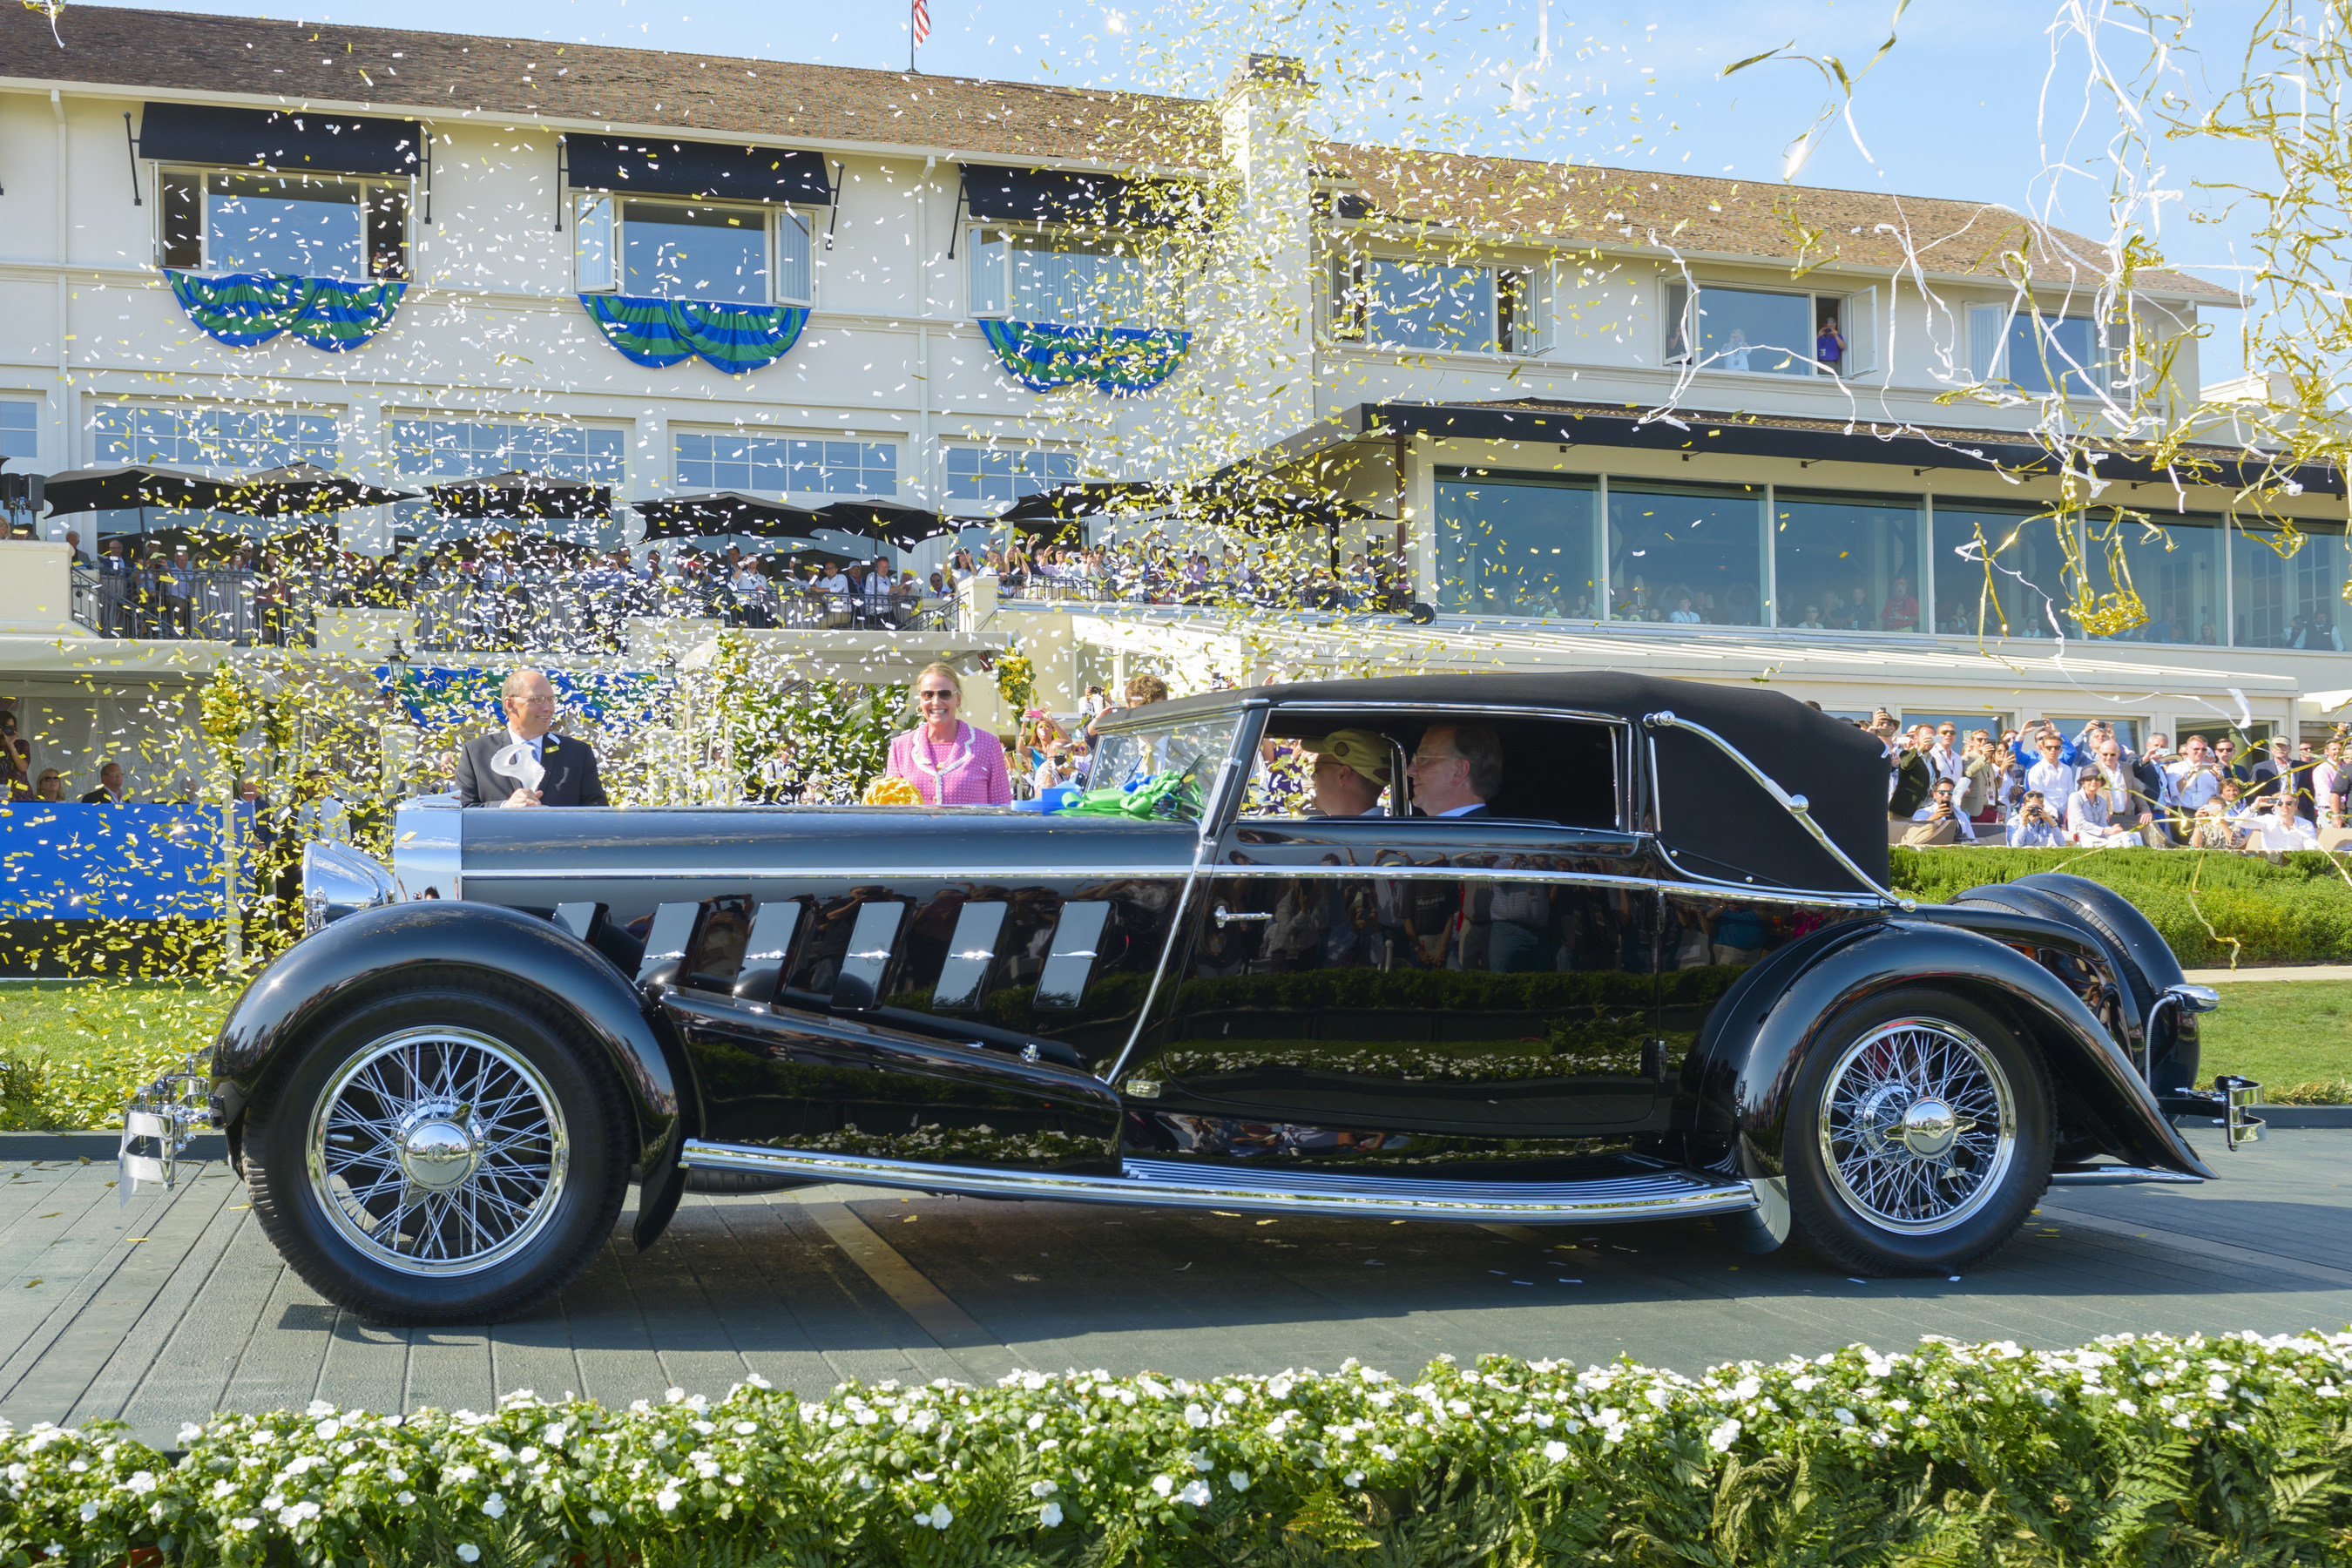 2015 Best of Show award goes to a 1924 Isotta Fraschini Tipo 8A F. Ramseier & Cie Worblaufern Cabriolet. Photo Copyright (C) Kimball Studios / Courtesy of Pebble Beach Concours d'Elegance